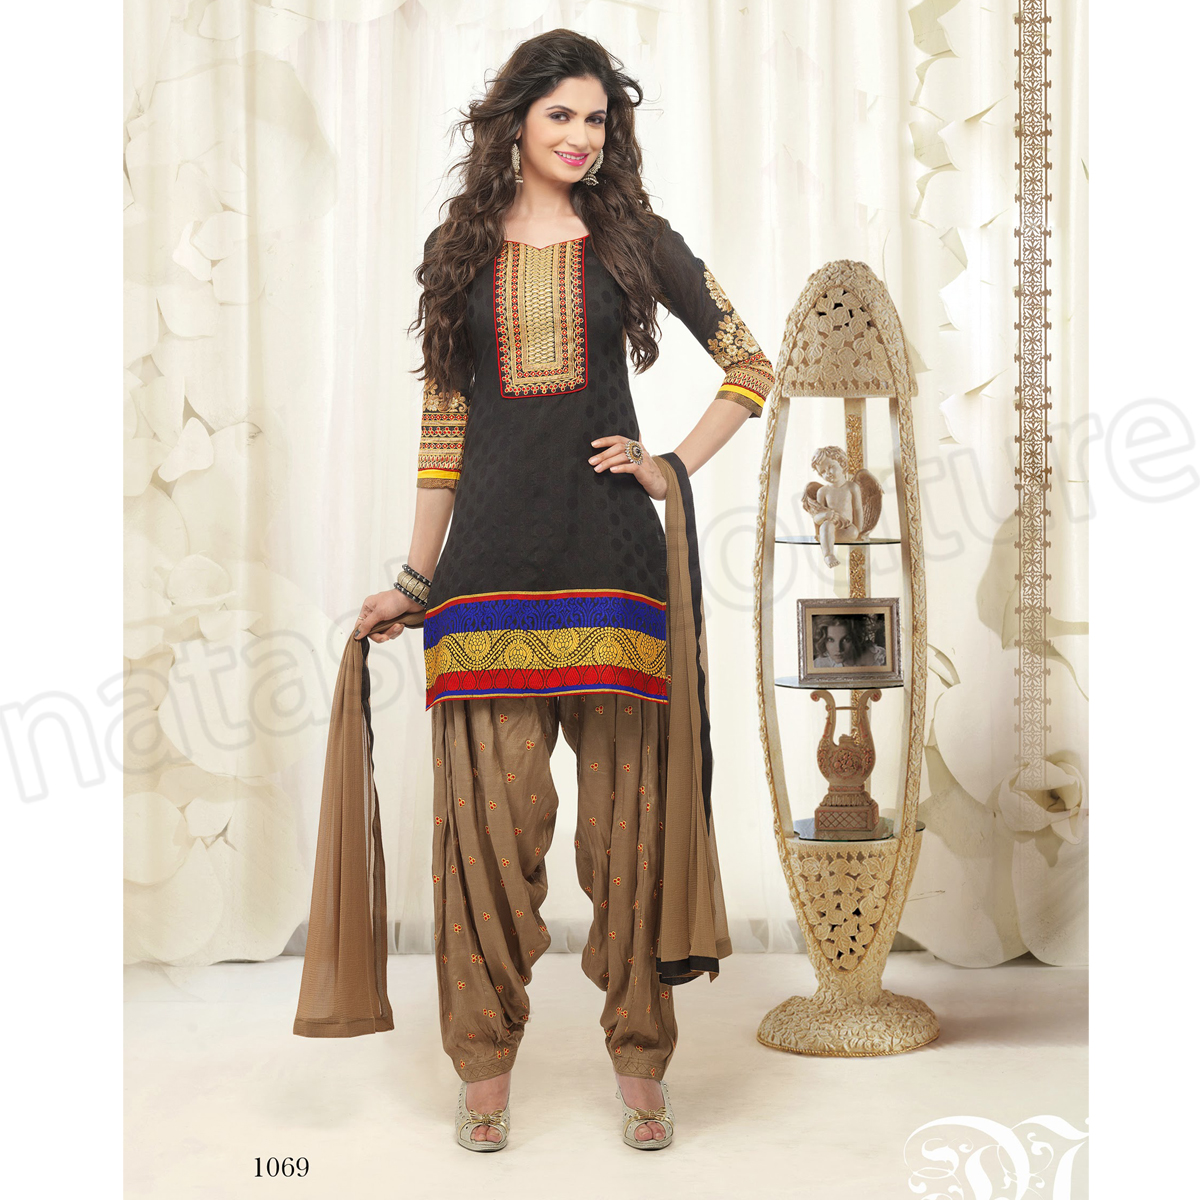 Latest Indian Patiala shalwar kameez fashion 2015-2016 (11)